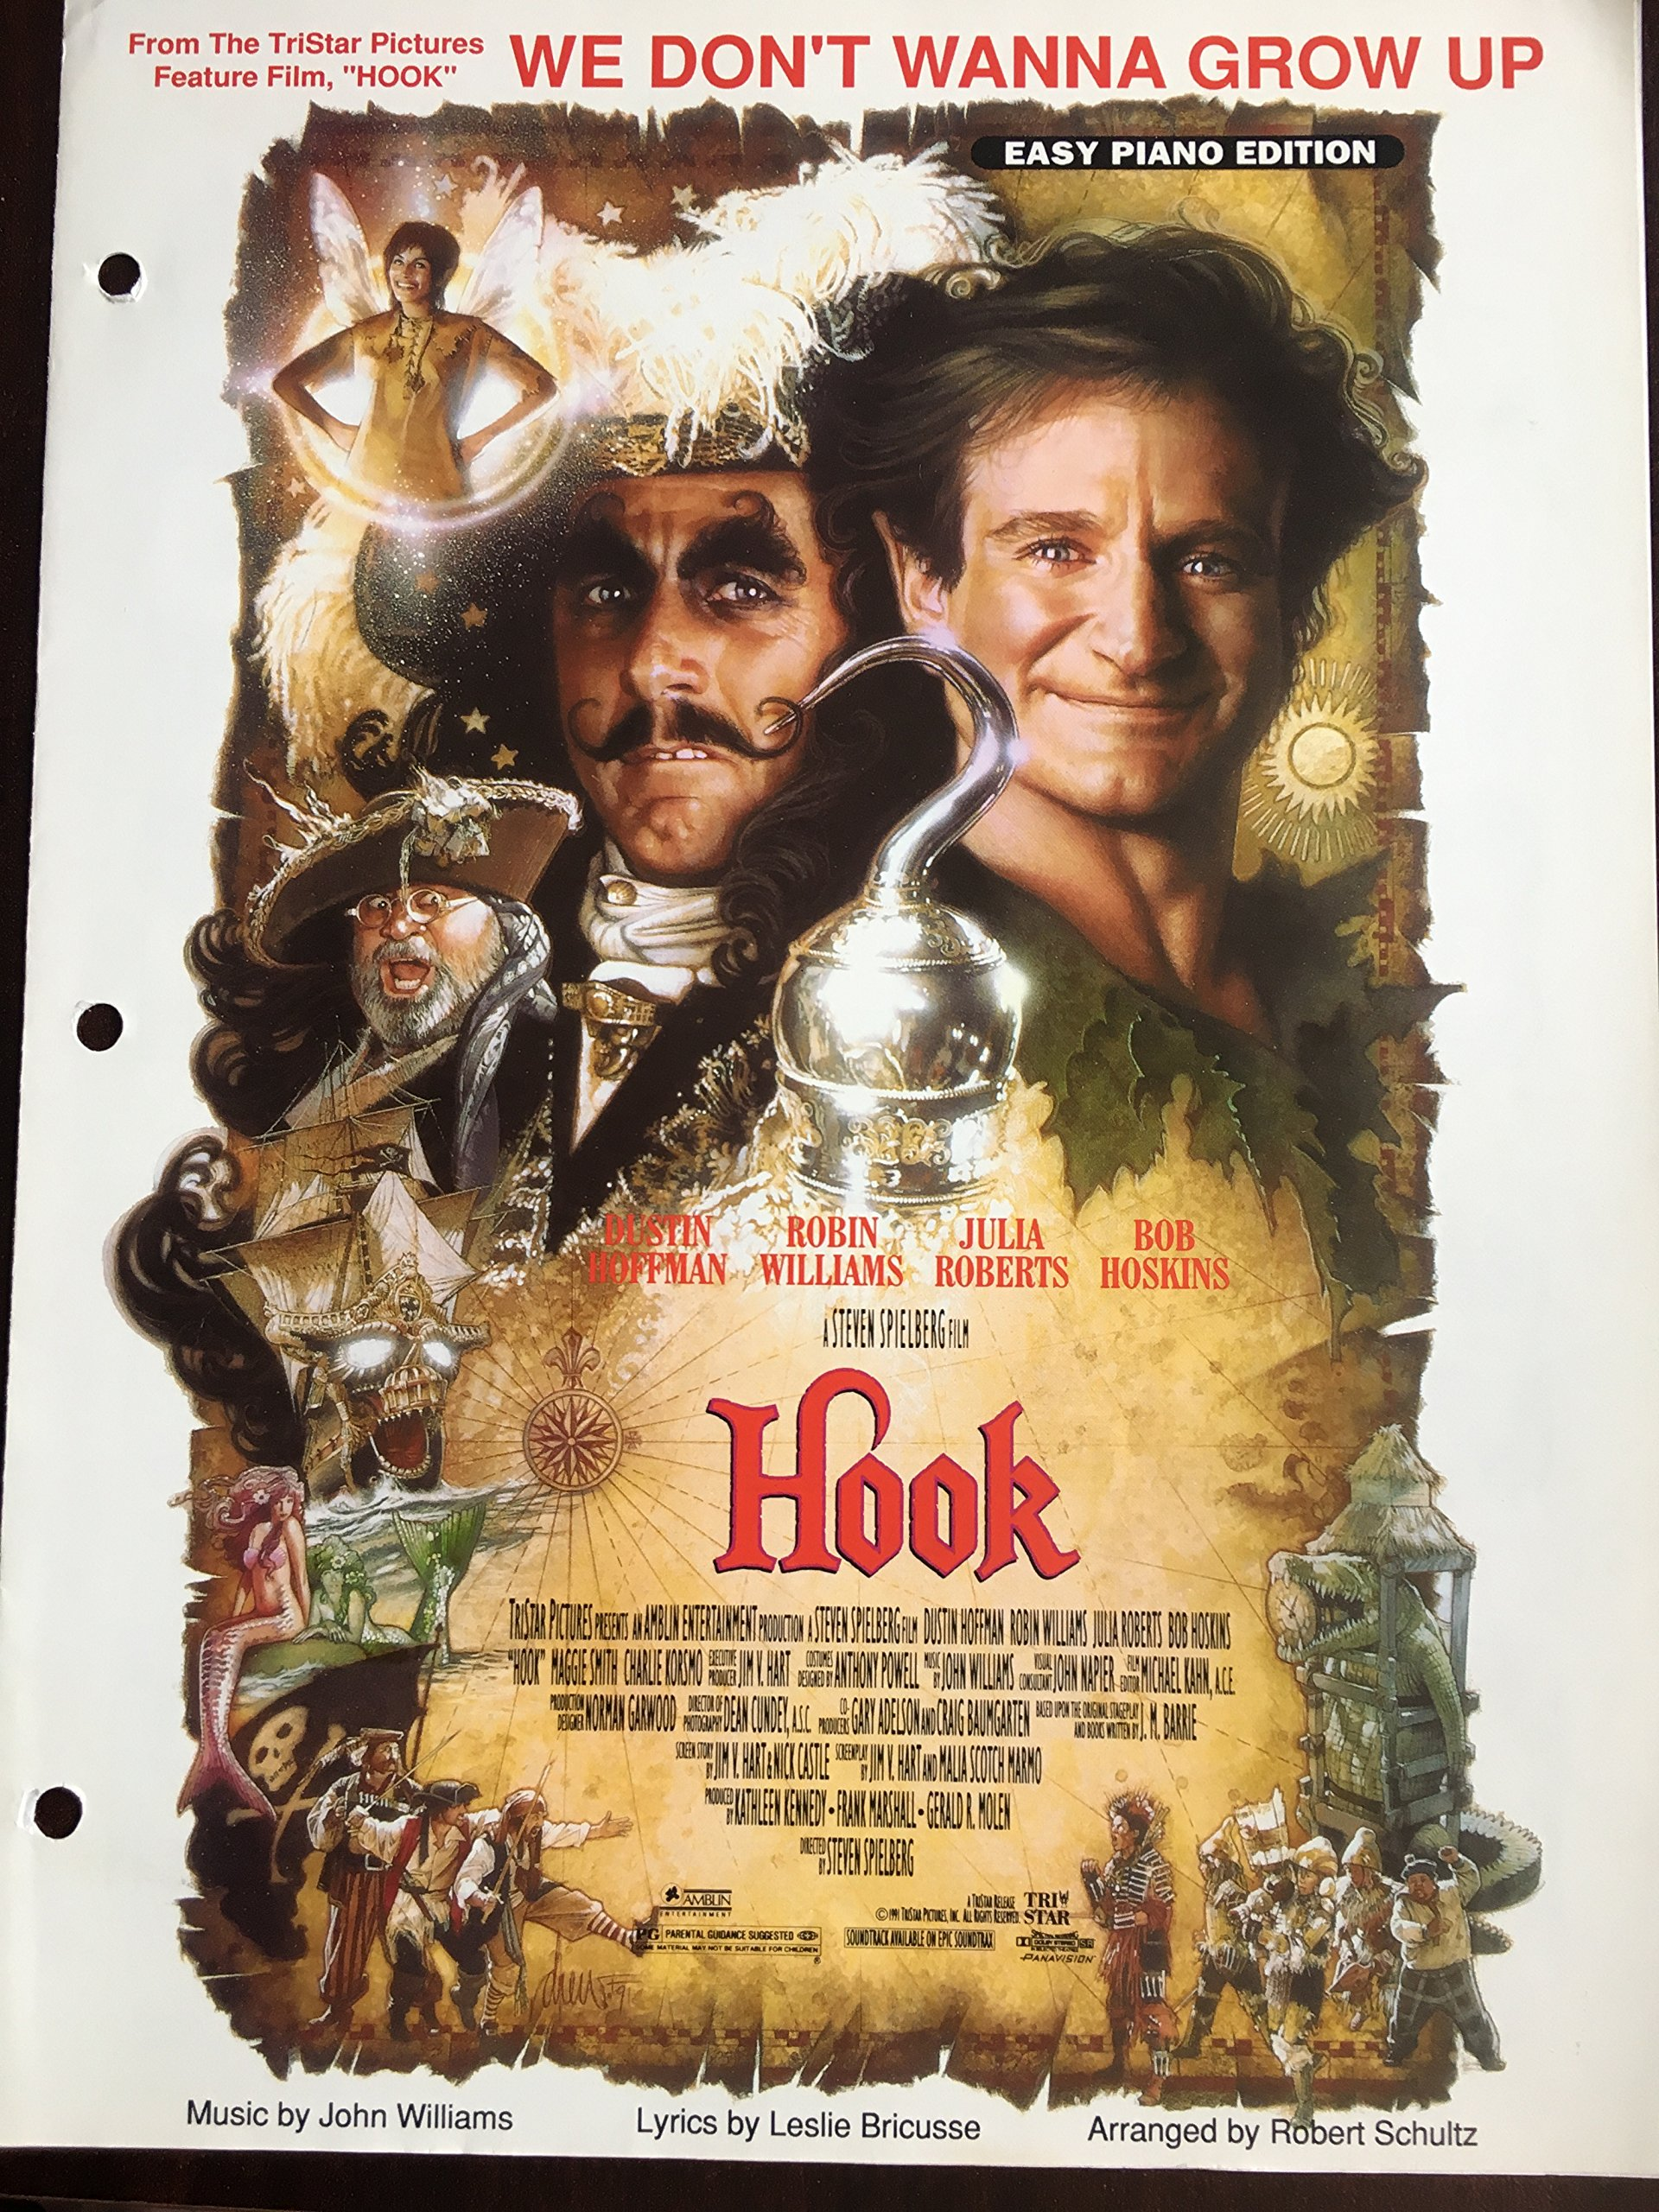 we dont wanna grow up from the tristar film hook easy piano edition arranged by robert schultz